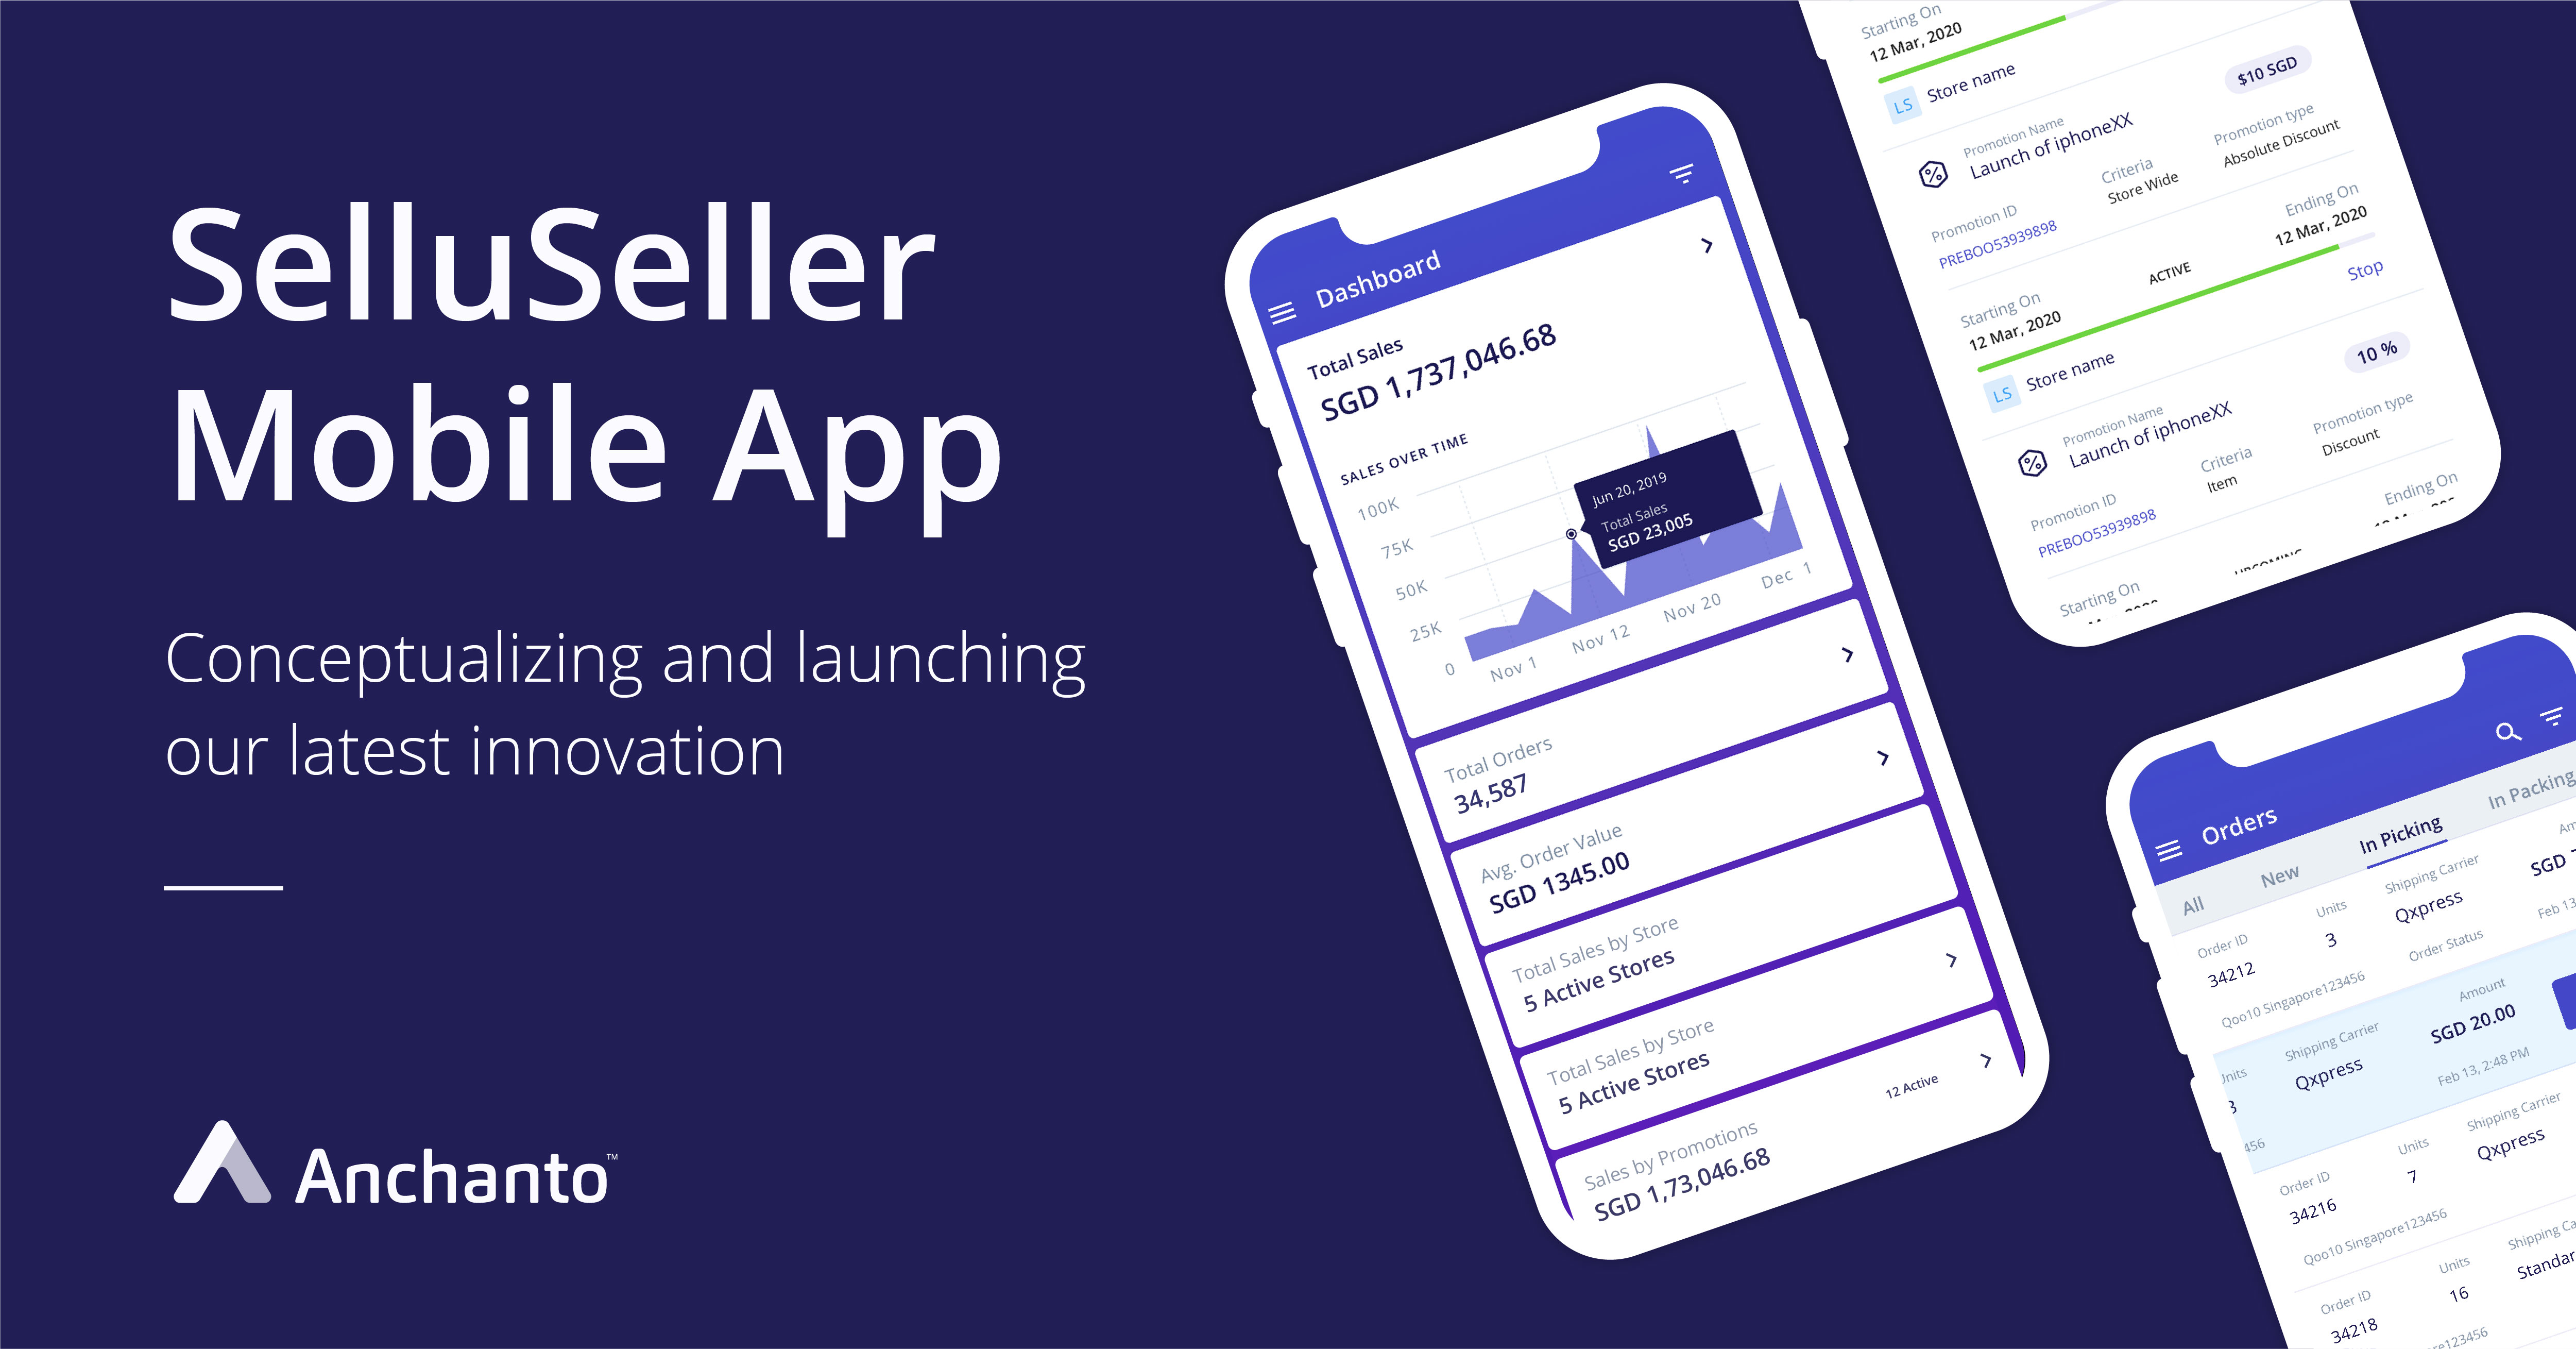 Anchanto's revolutionary and innovative SelluSeller mobile application